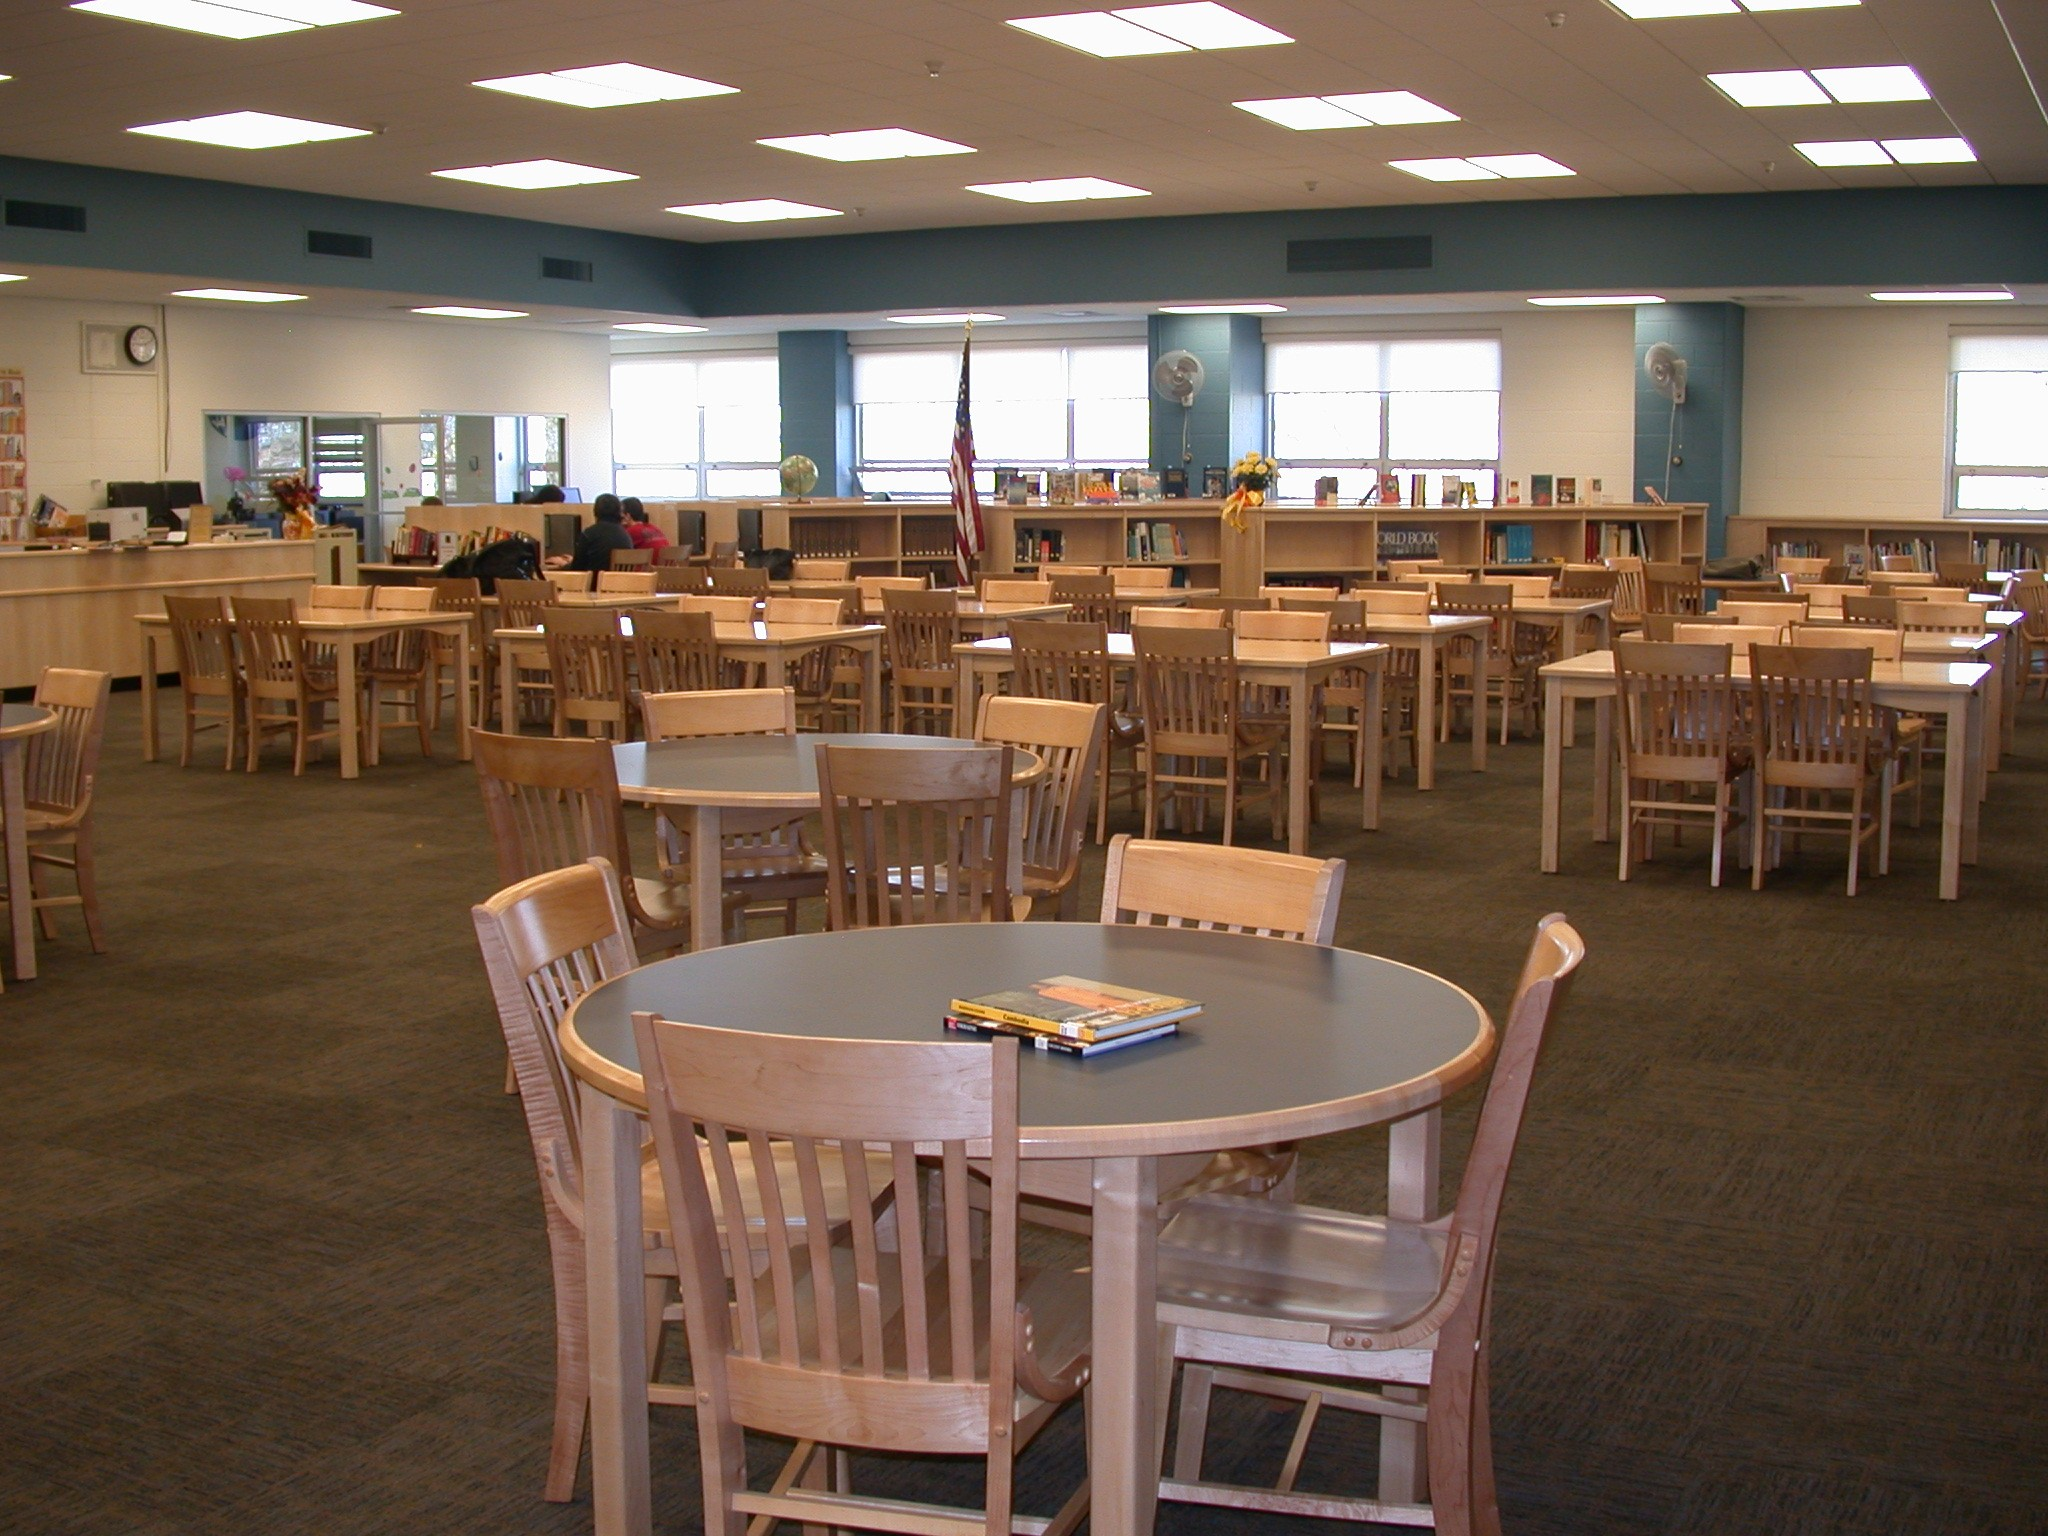 Longo Schools Blog Archive Wood Library Furniture - Library furniture